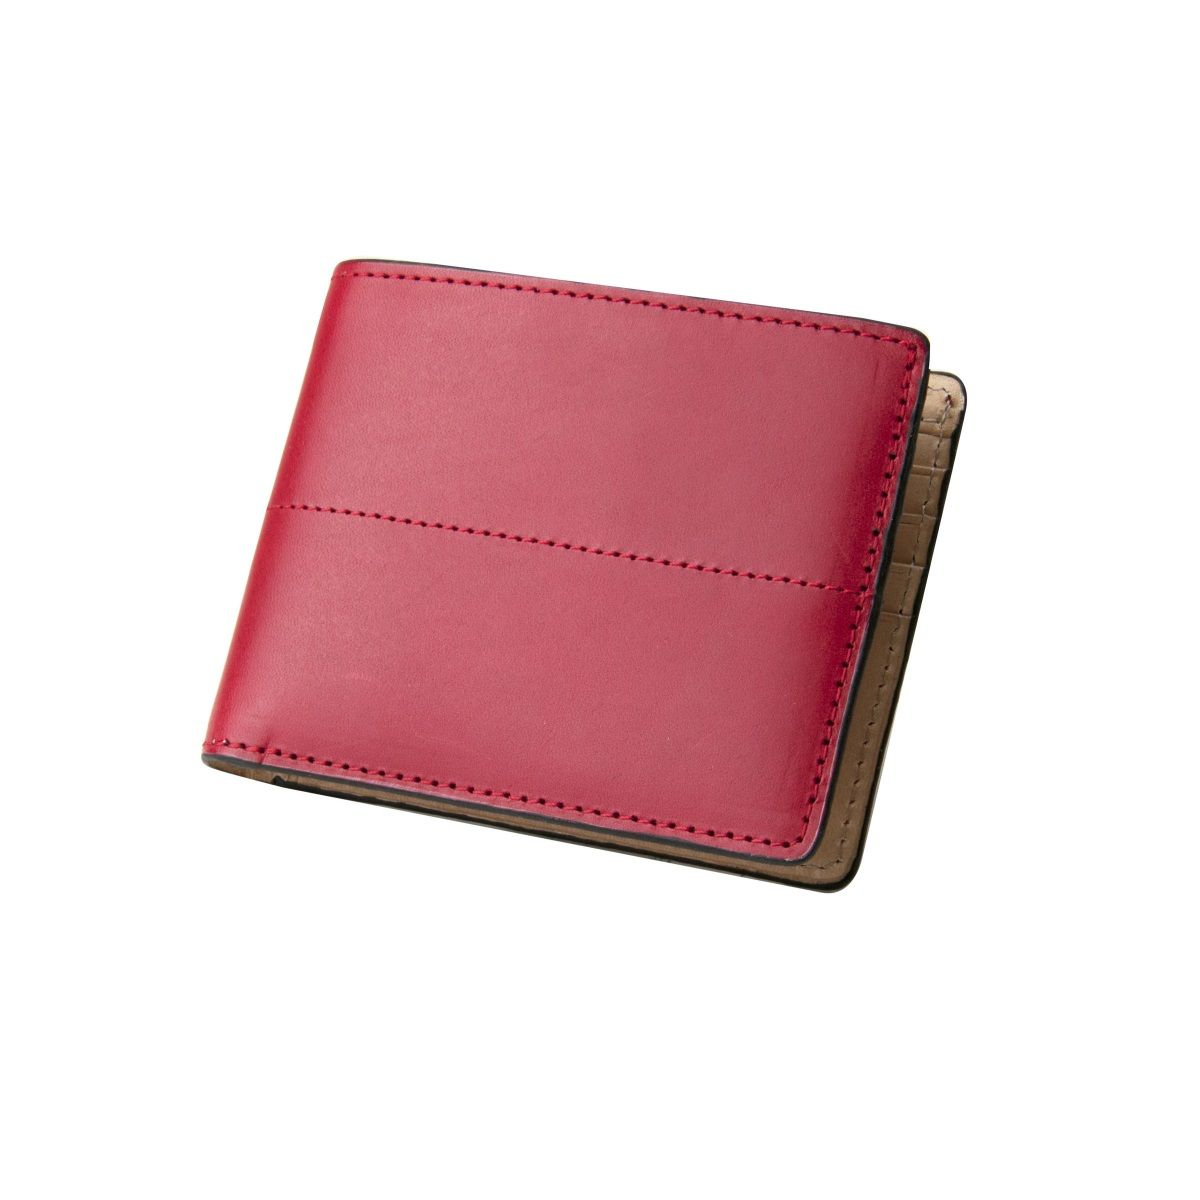 Thunderbird Leather Wallet - Red